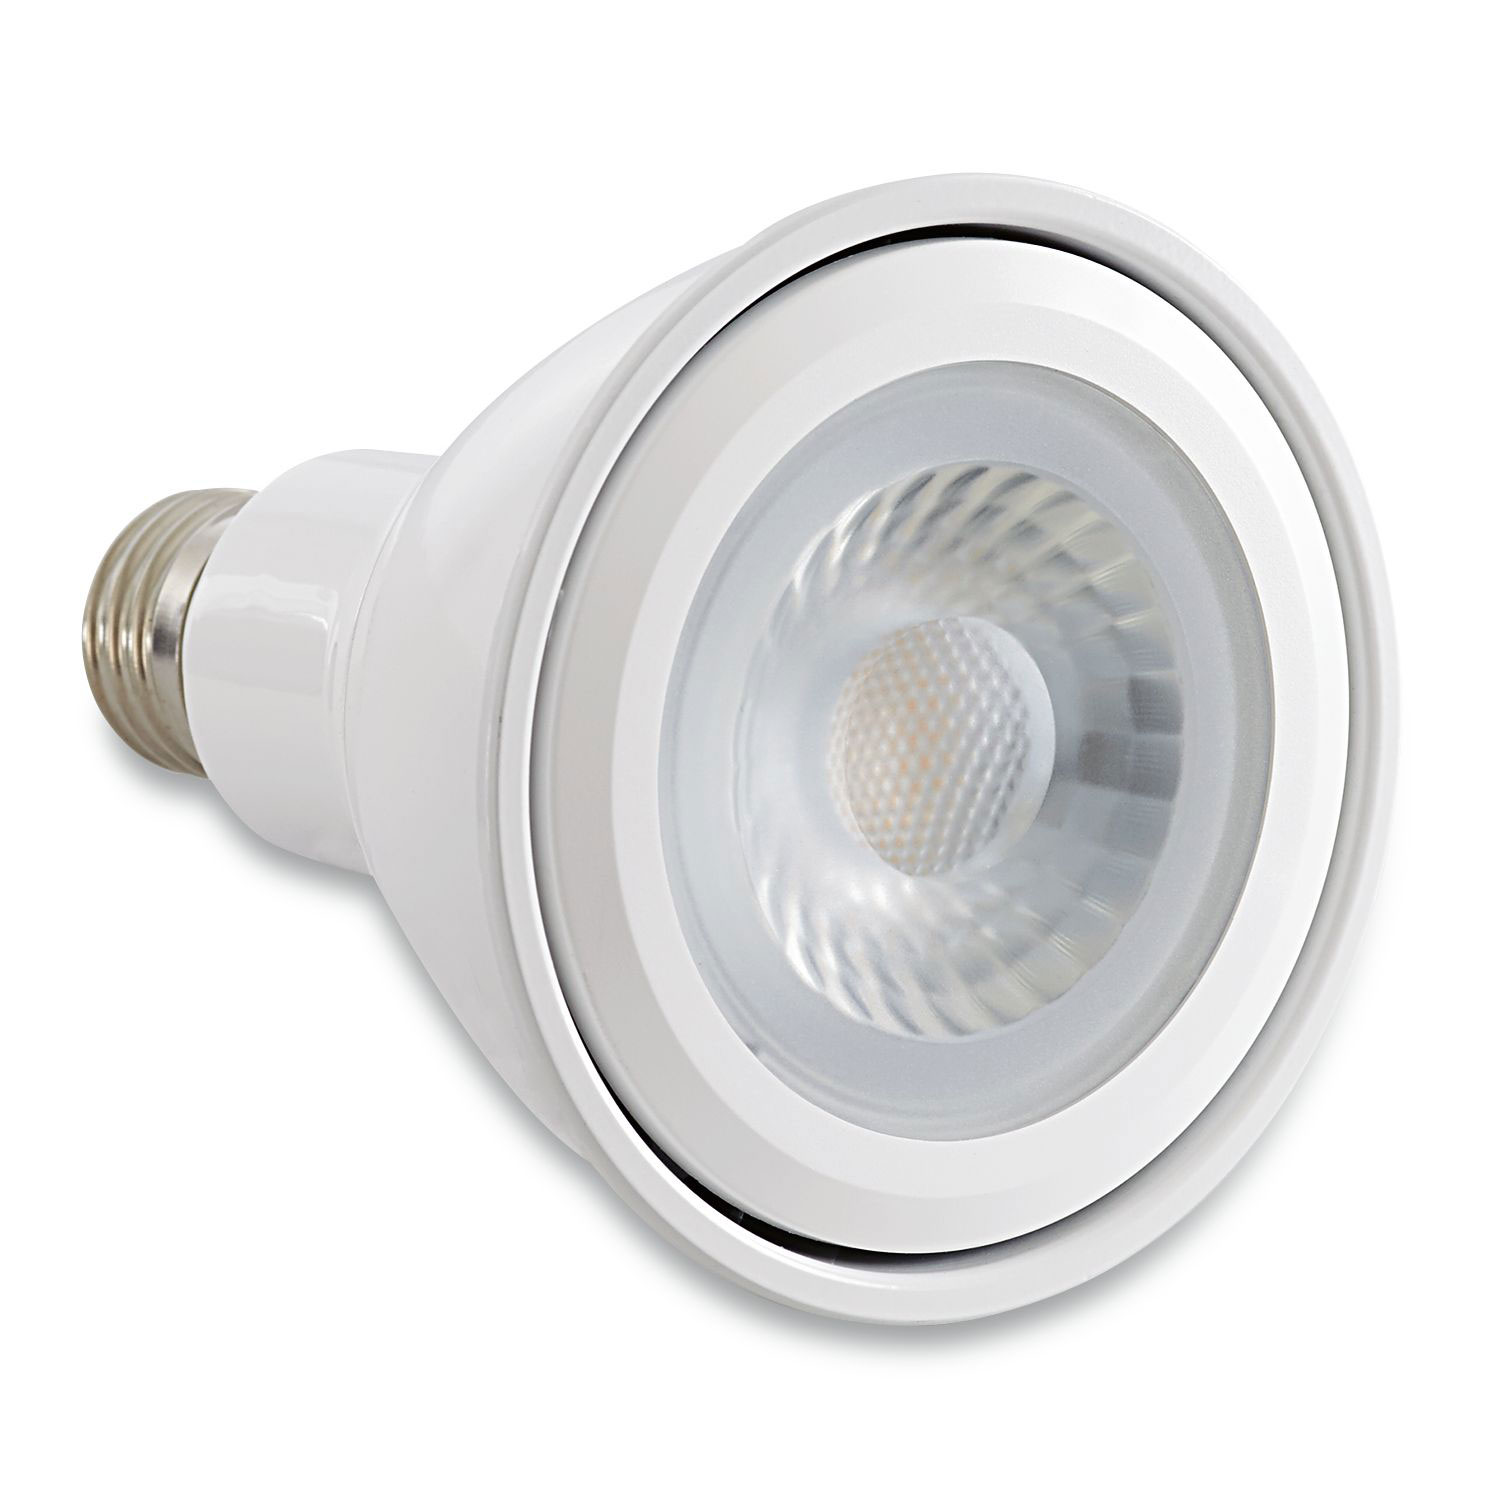 Verbatim, LED, PAR30, High CRI Warm White10W, 3000K, P30-L800-C30-B40-90-W